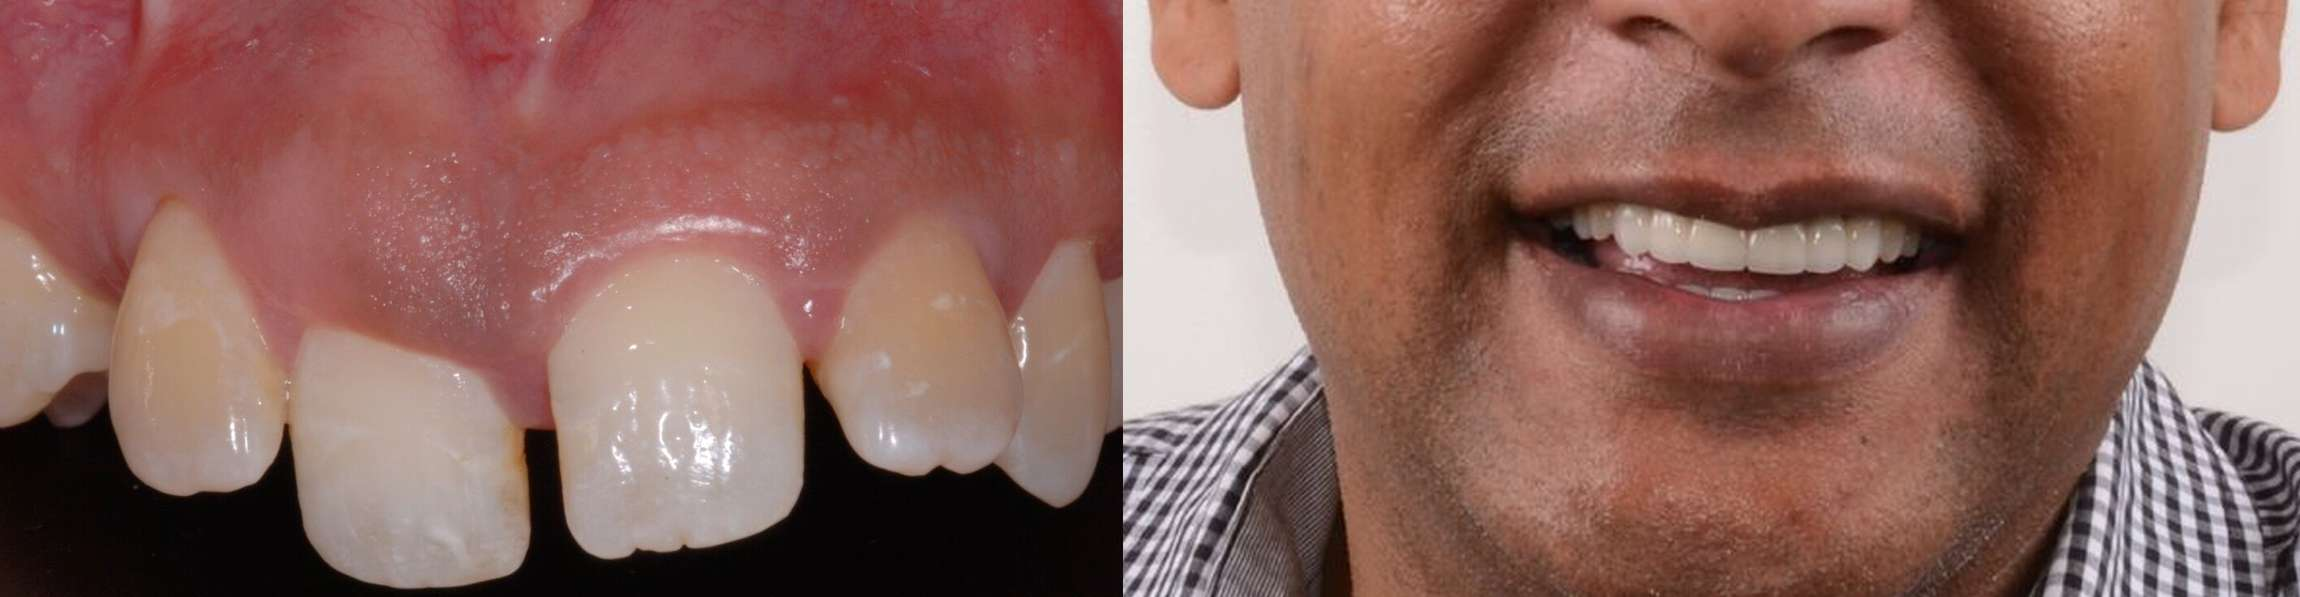 single tooth implant before after